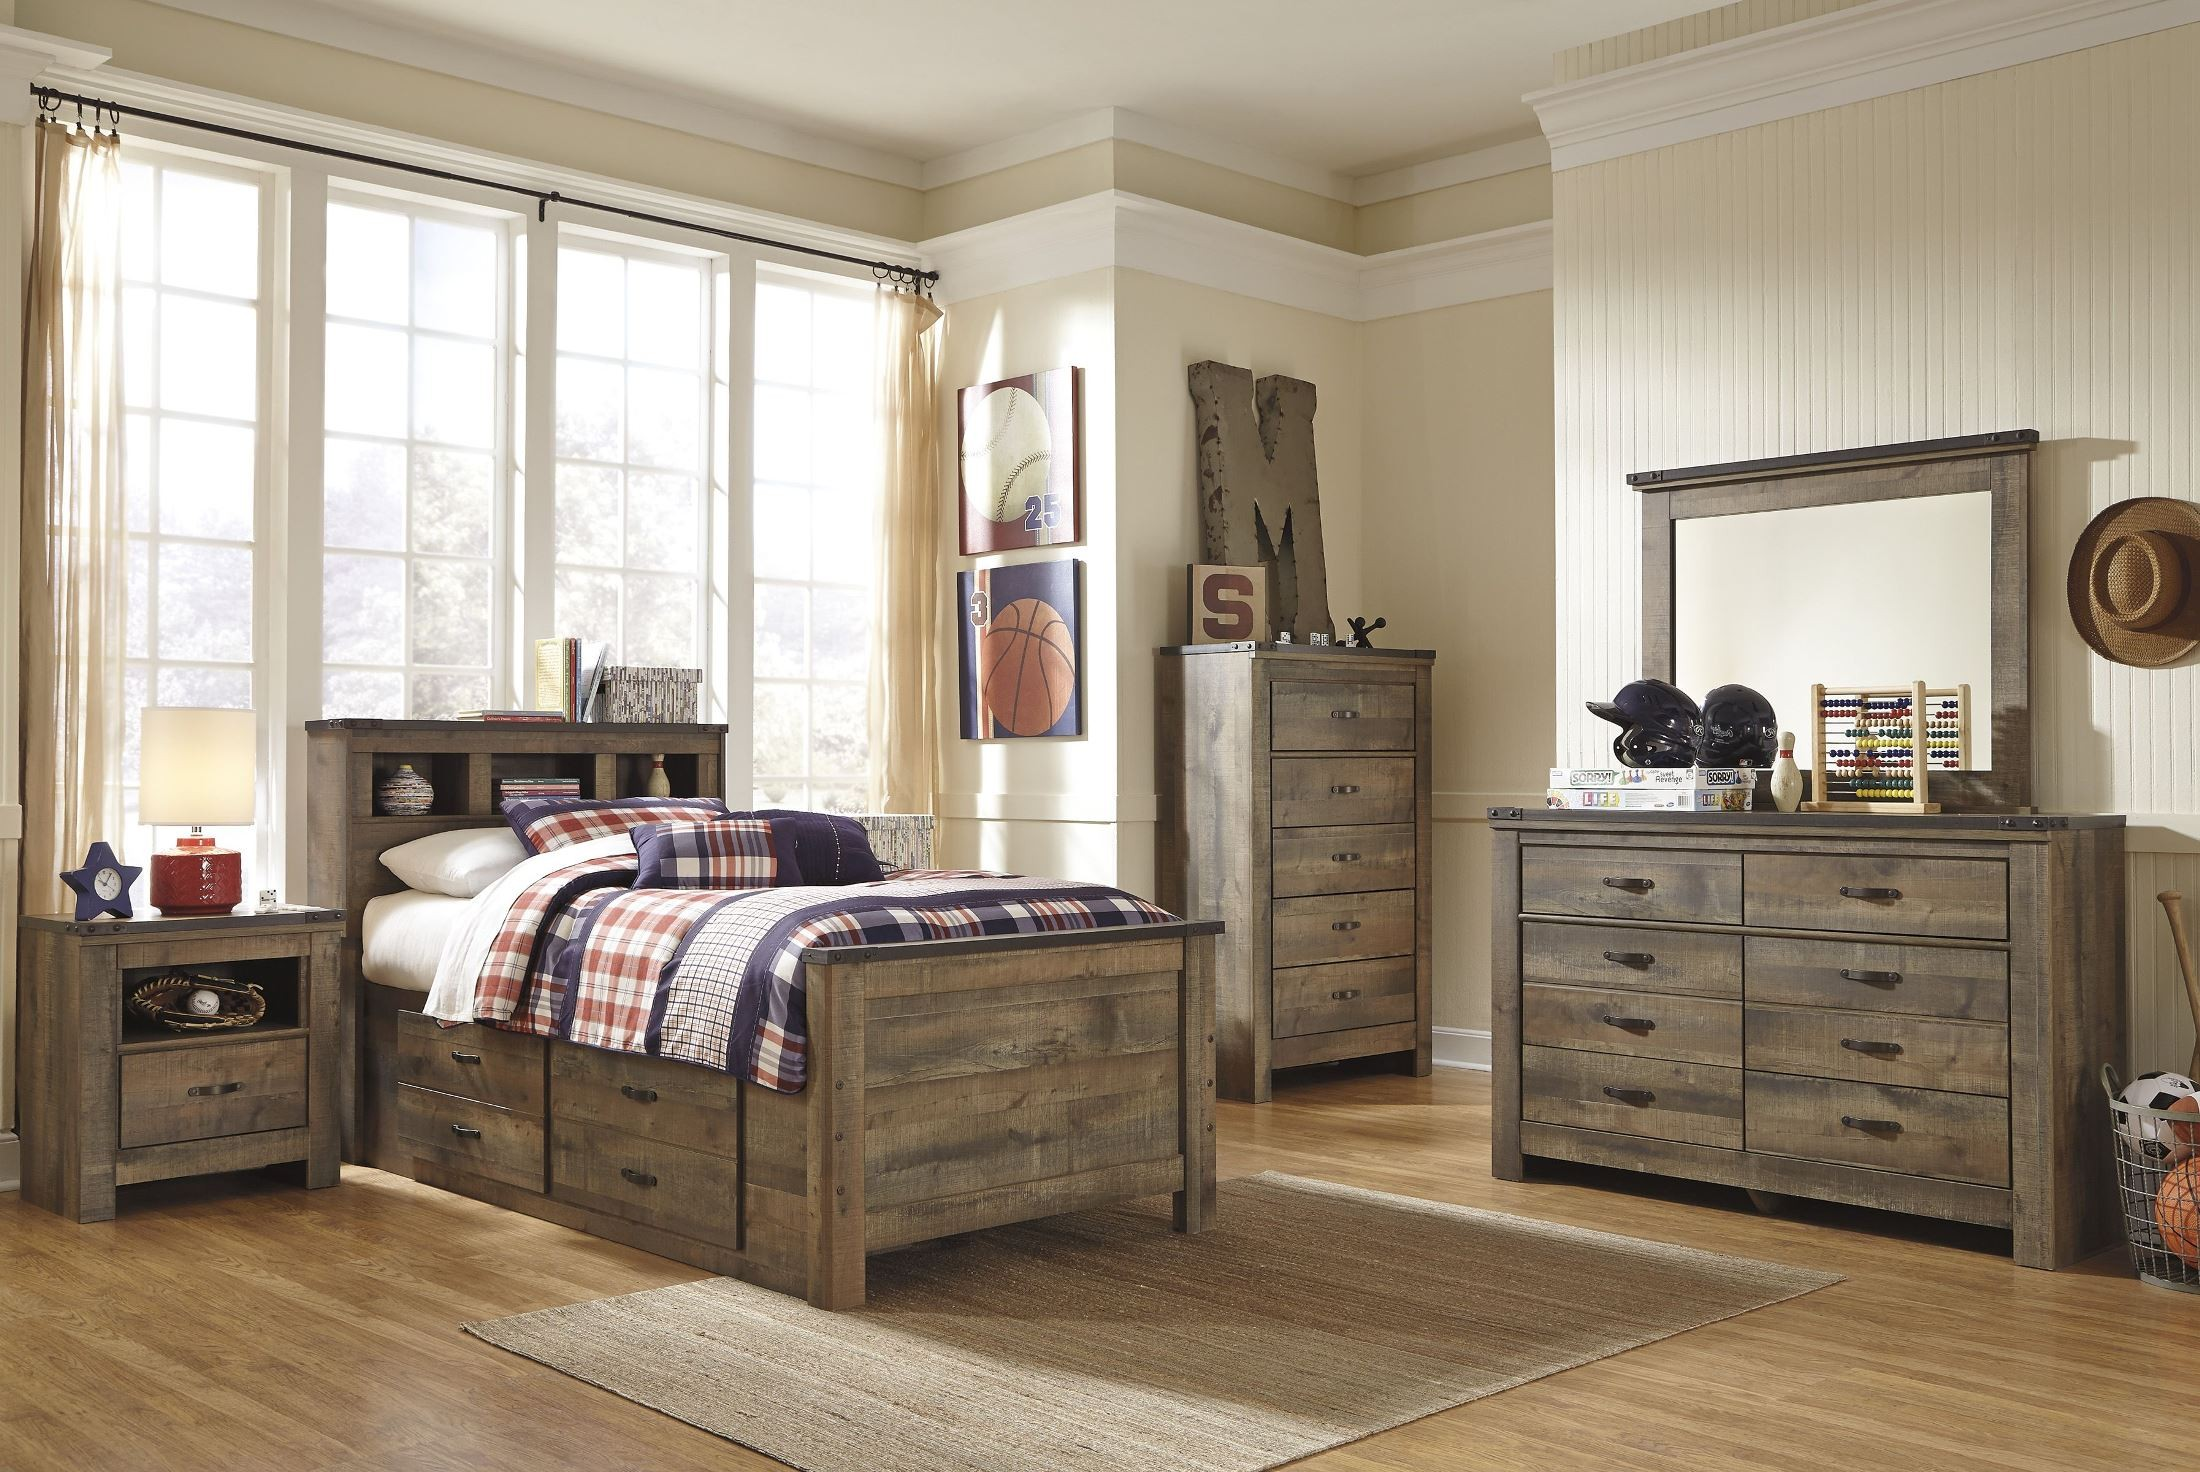 Trinell brown youth bookcase bedroom set b446 63 53 83 for Youth bedroom furniture